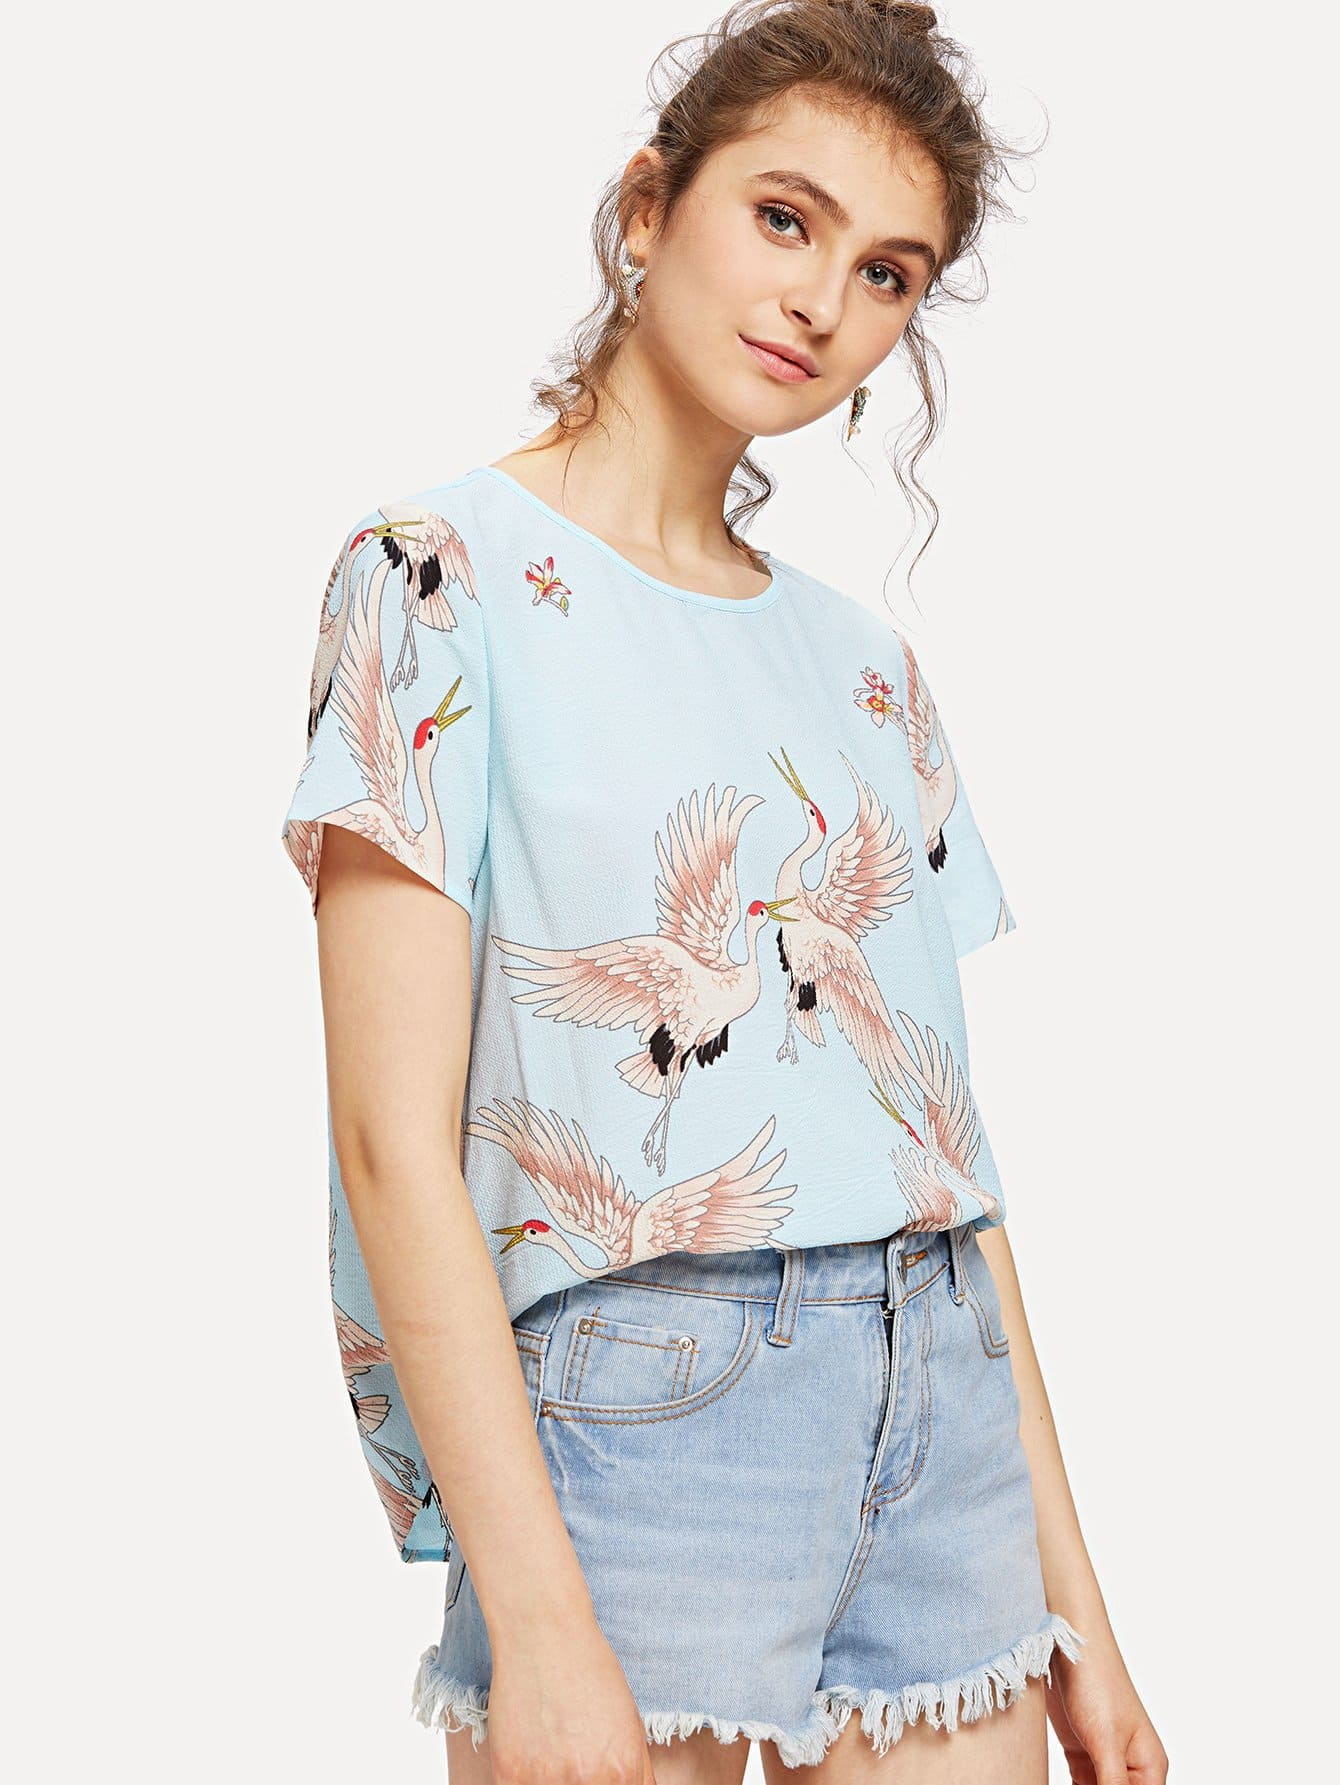 Red-crowned Crane Print Top iron crowned